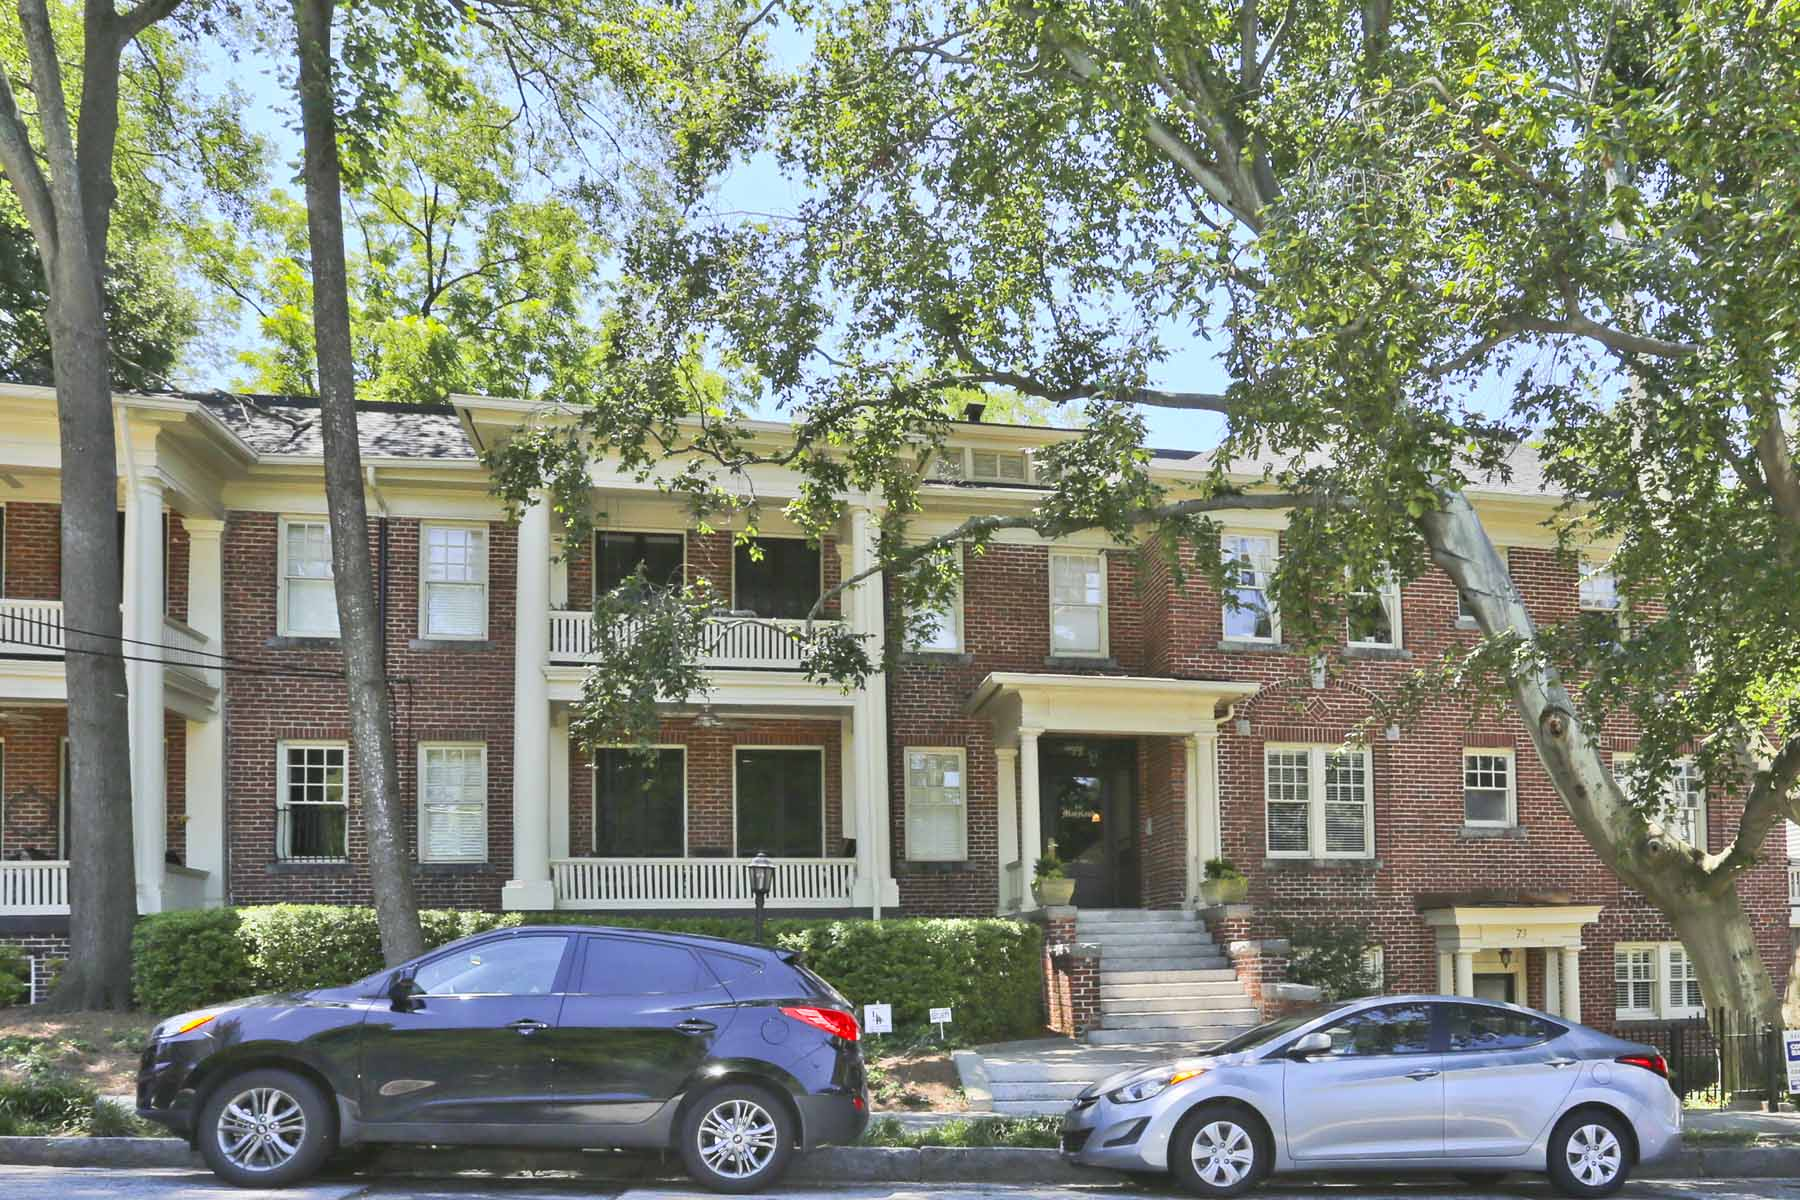 Condominiums for Sale at Renovated Historical Charm in Ansley Park 75 17th St 7 Atlanta, Georgia 30309 United States